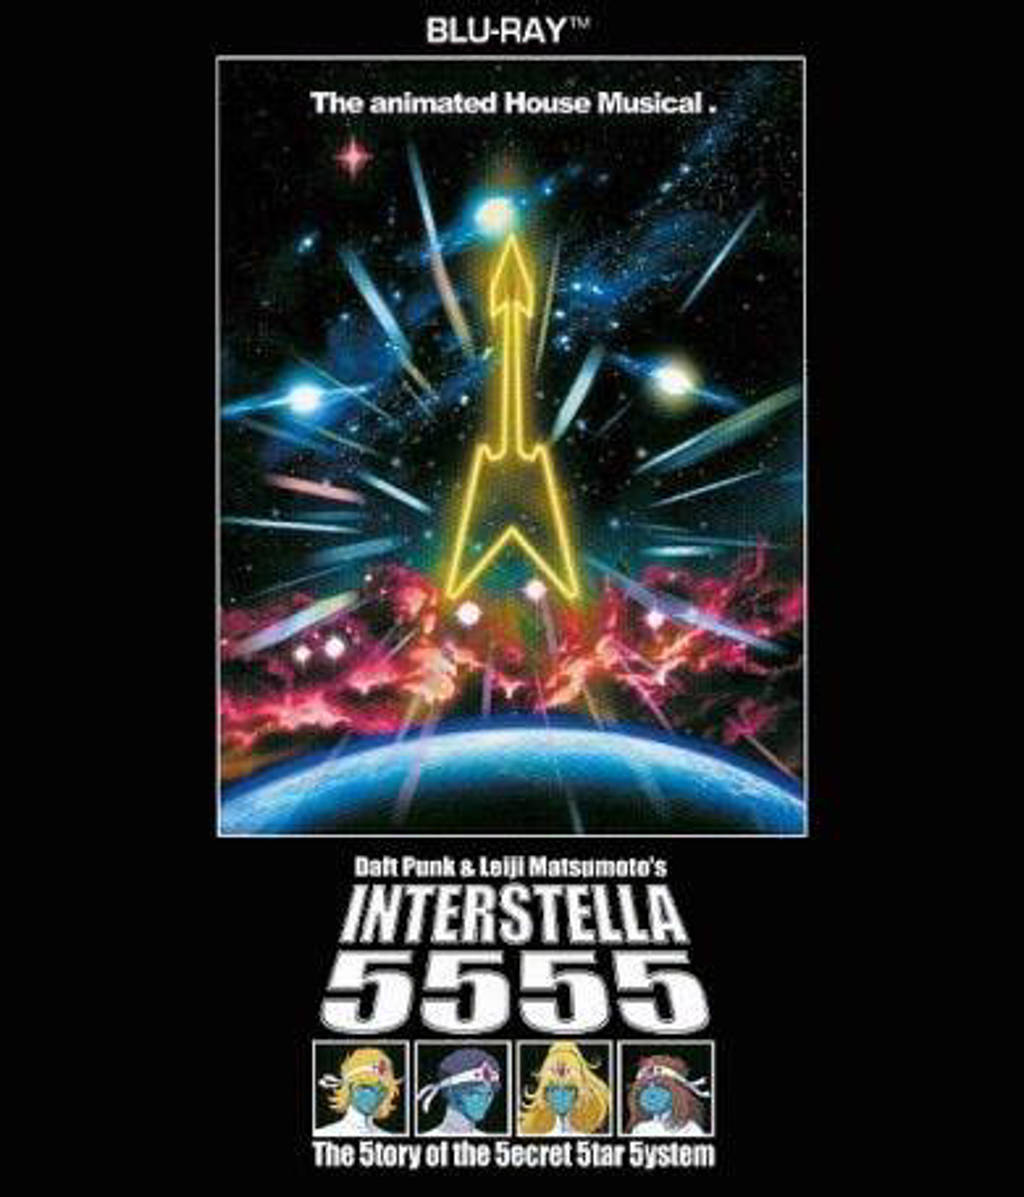 Daft Punk - Interstellar 5555 (Blu Ray) (Blu-ray)